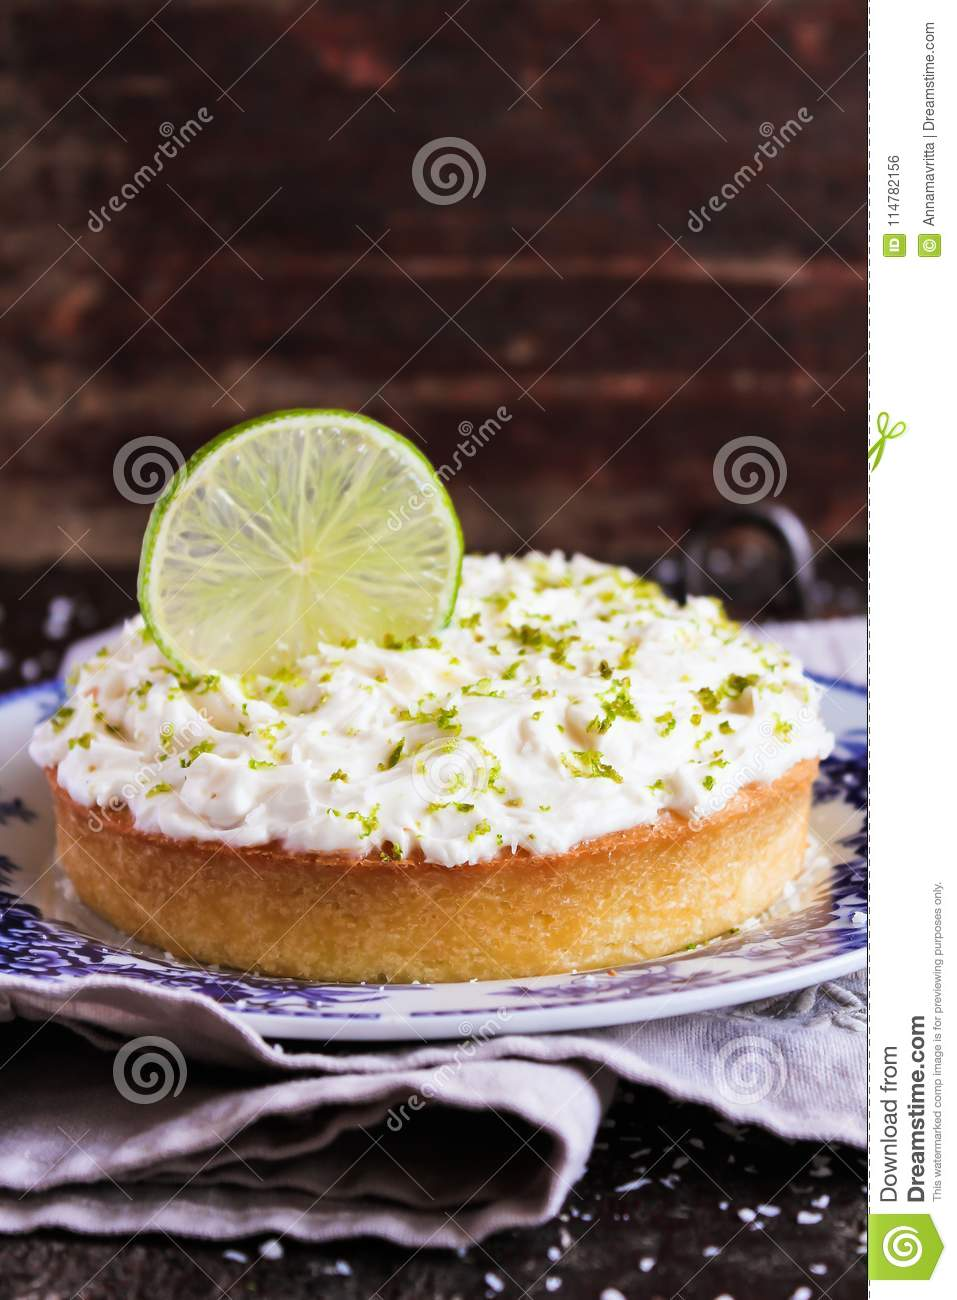 Pound cake with lemon, lime and freshly shredded coconut with cream cheese frosting, selective focus. Copy space.